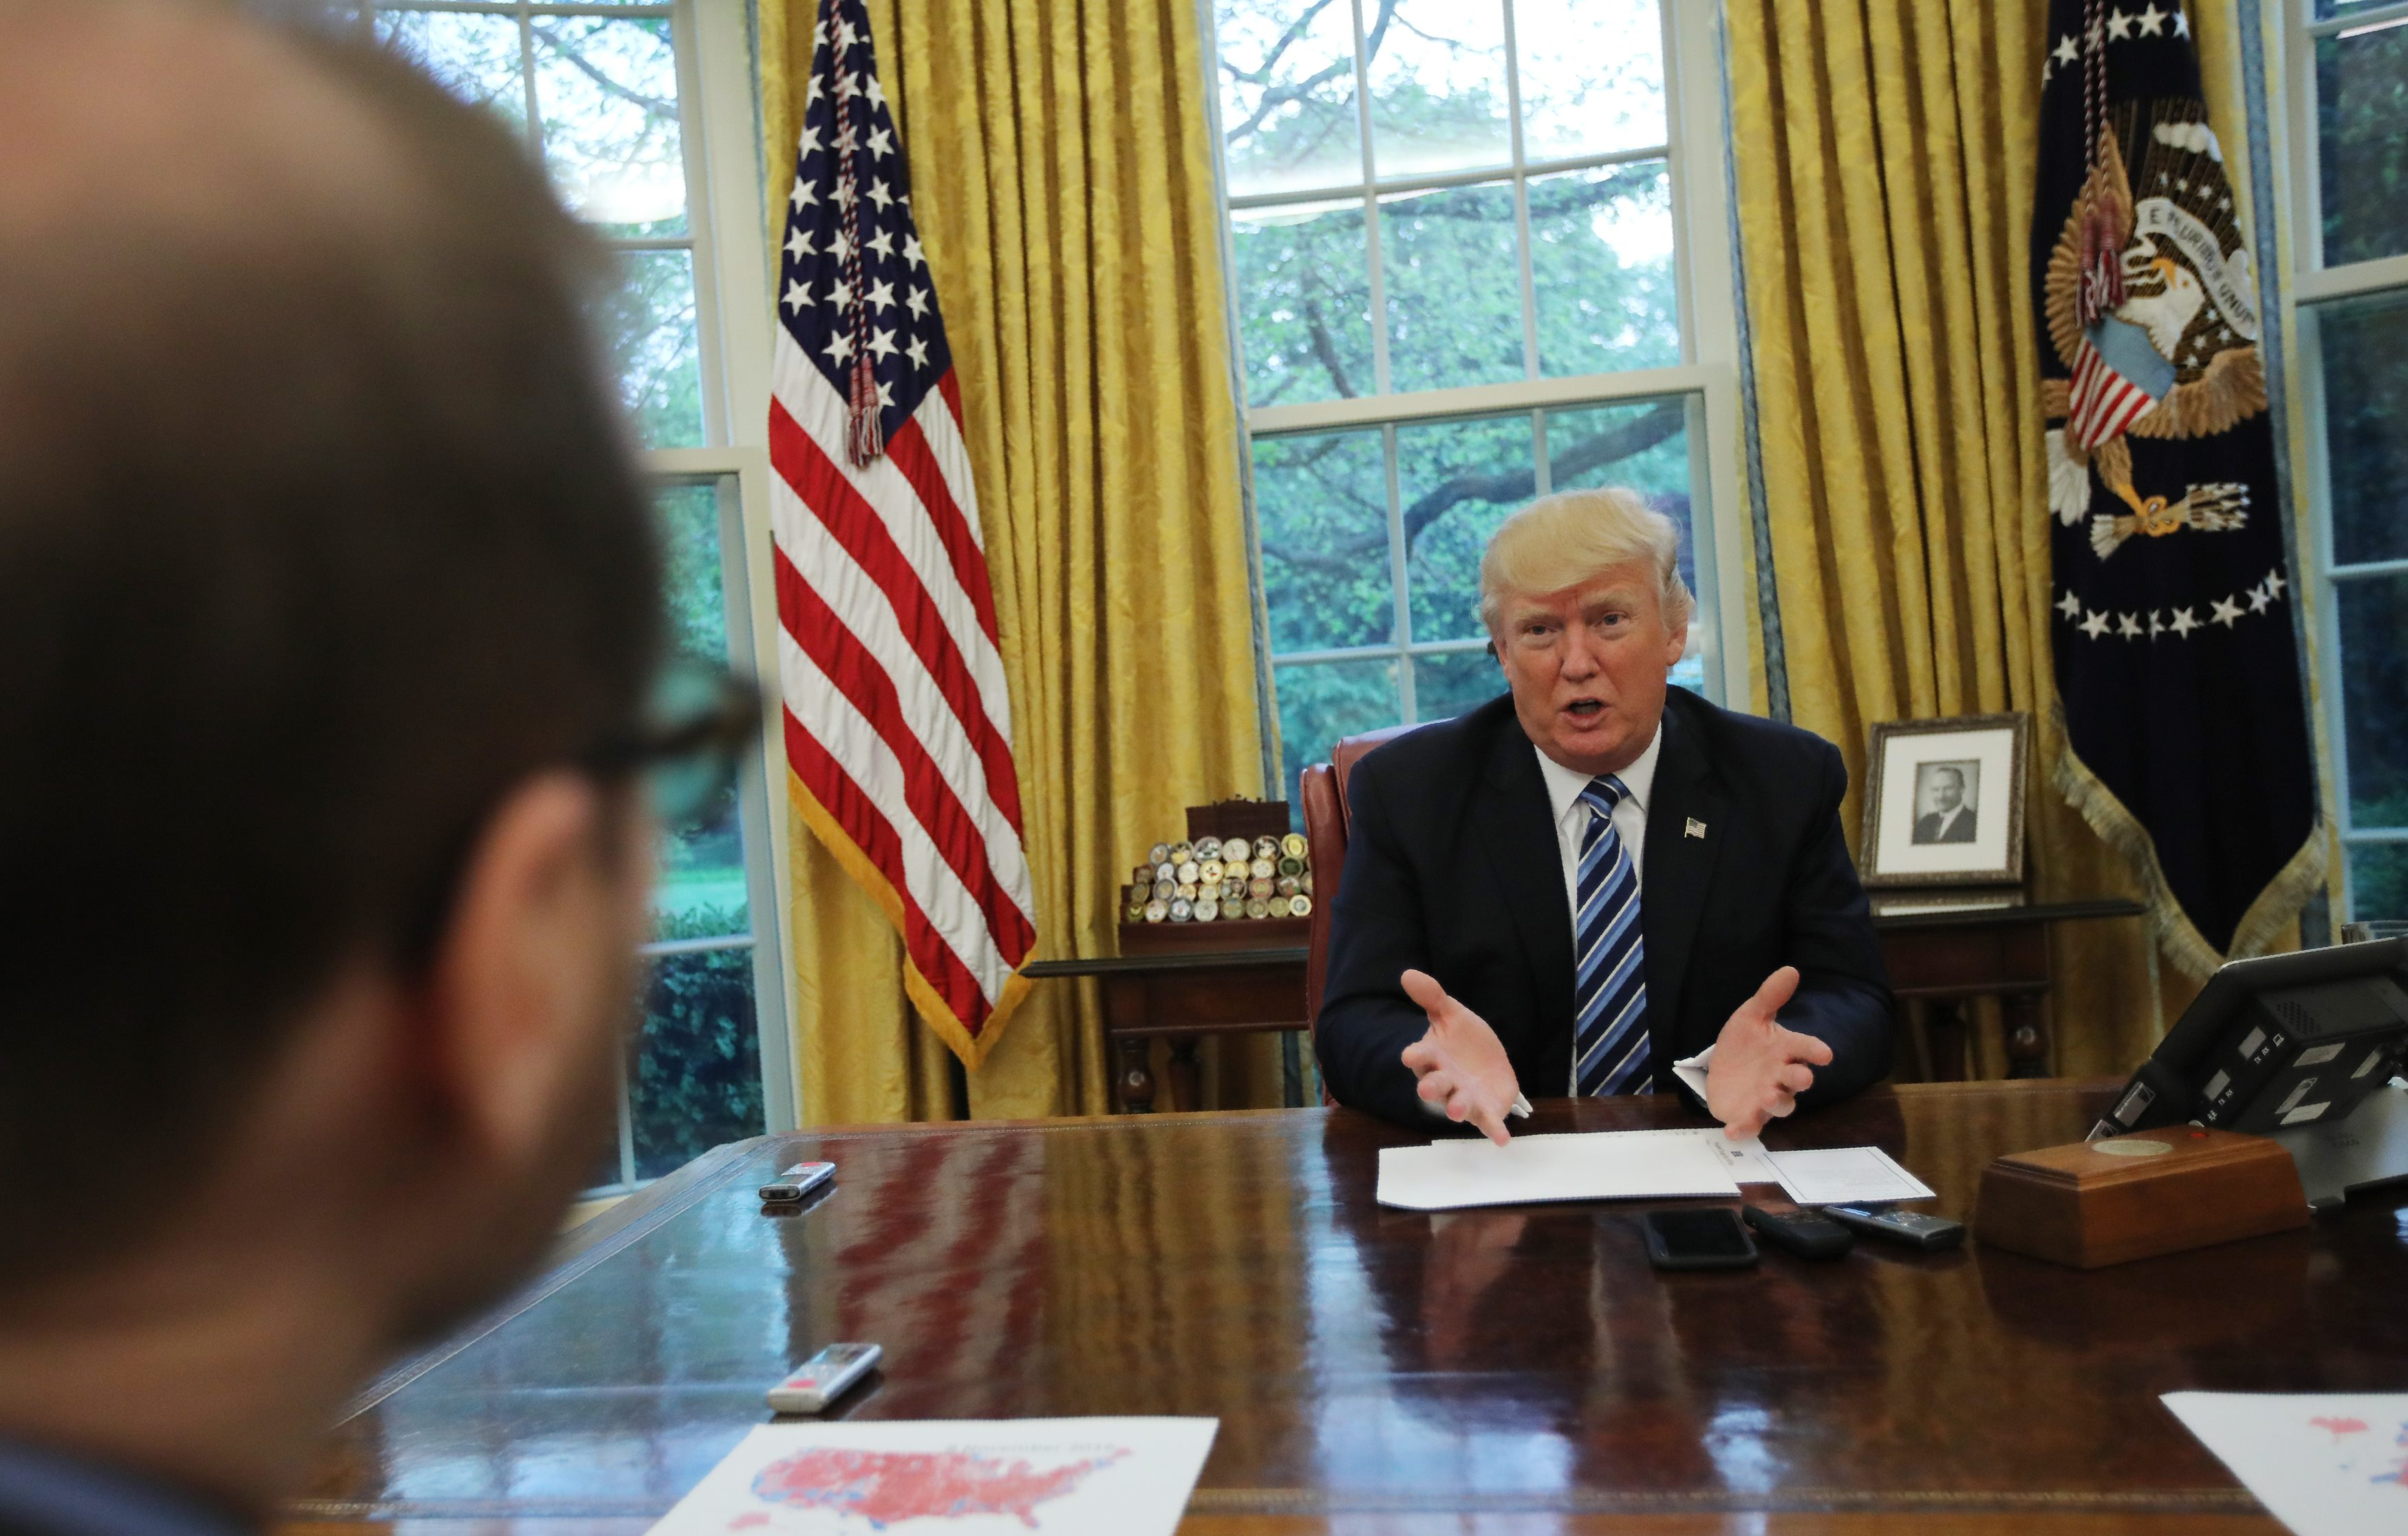 President Donald Trump speaks during an interview with Reuters in the Oval Office of the White House in Washington on April 27, 2017. (REUTERS/Carlos Barria)